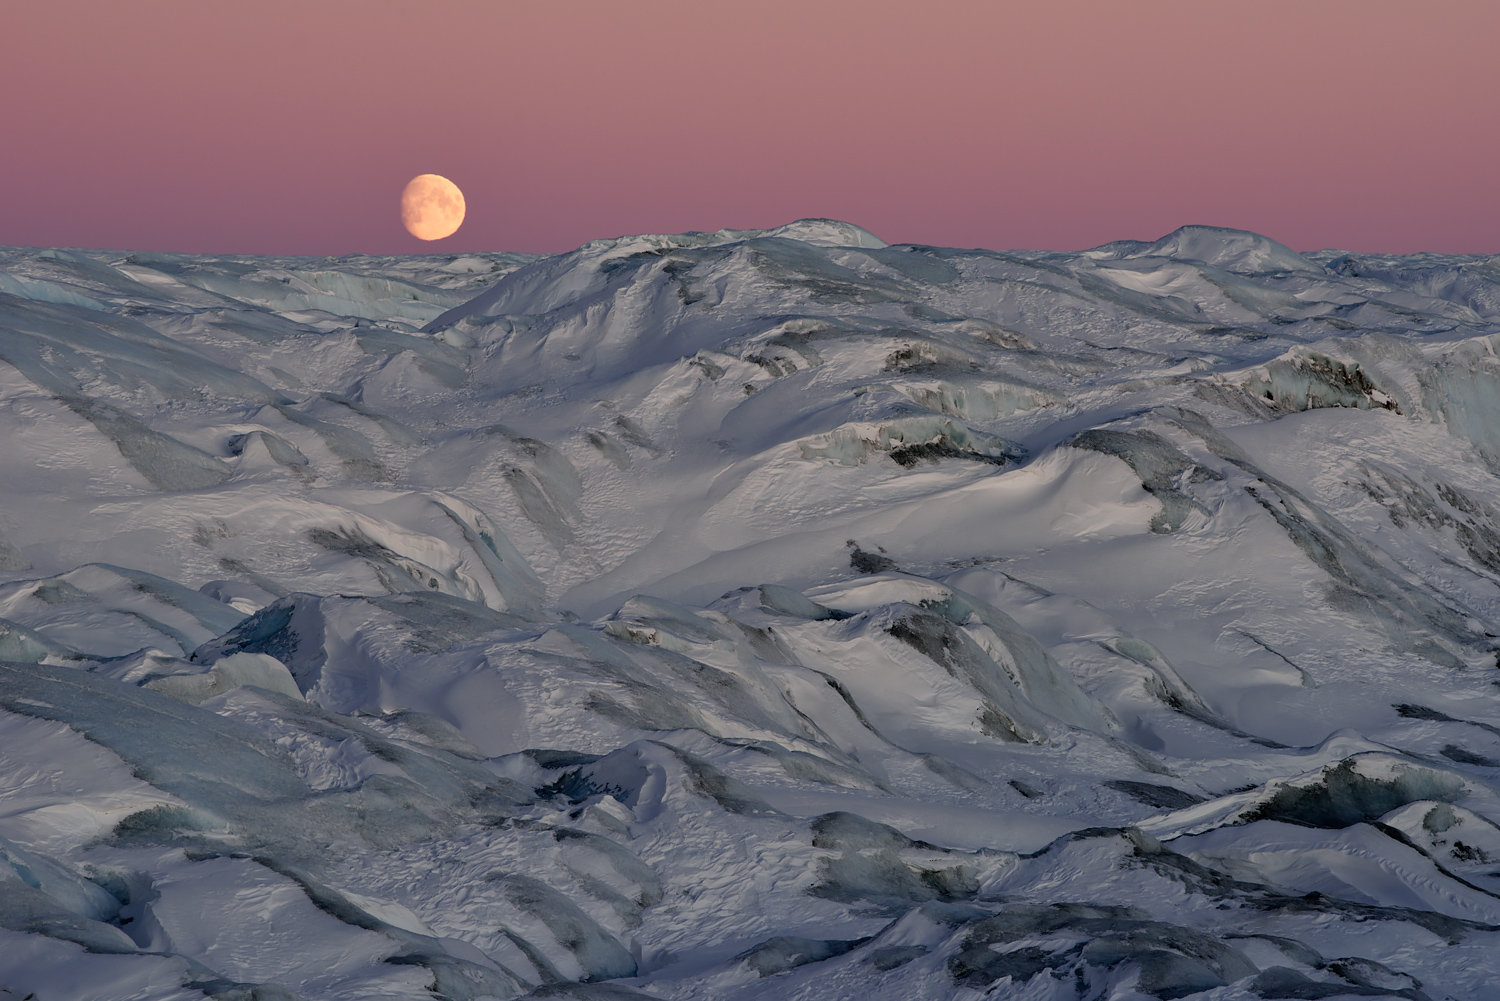 Moon Over The Icecap